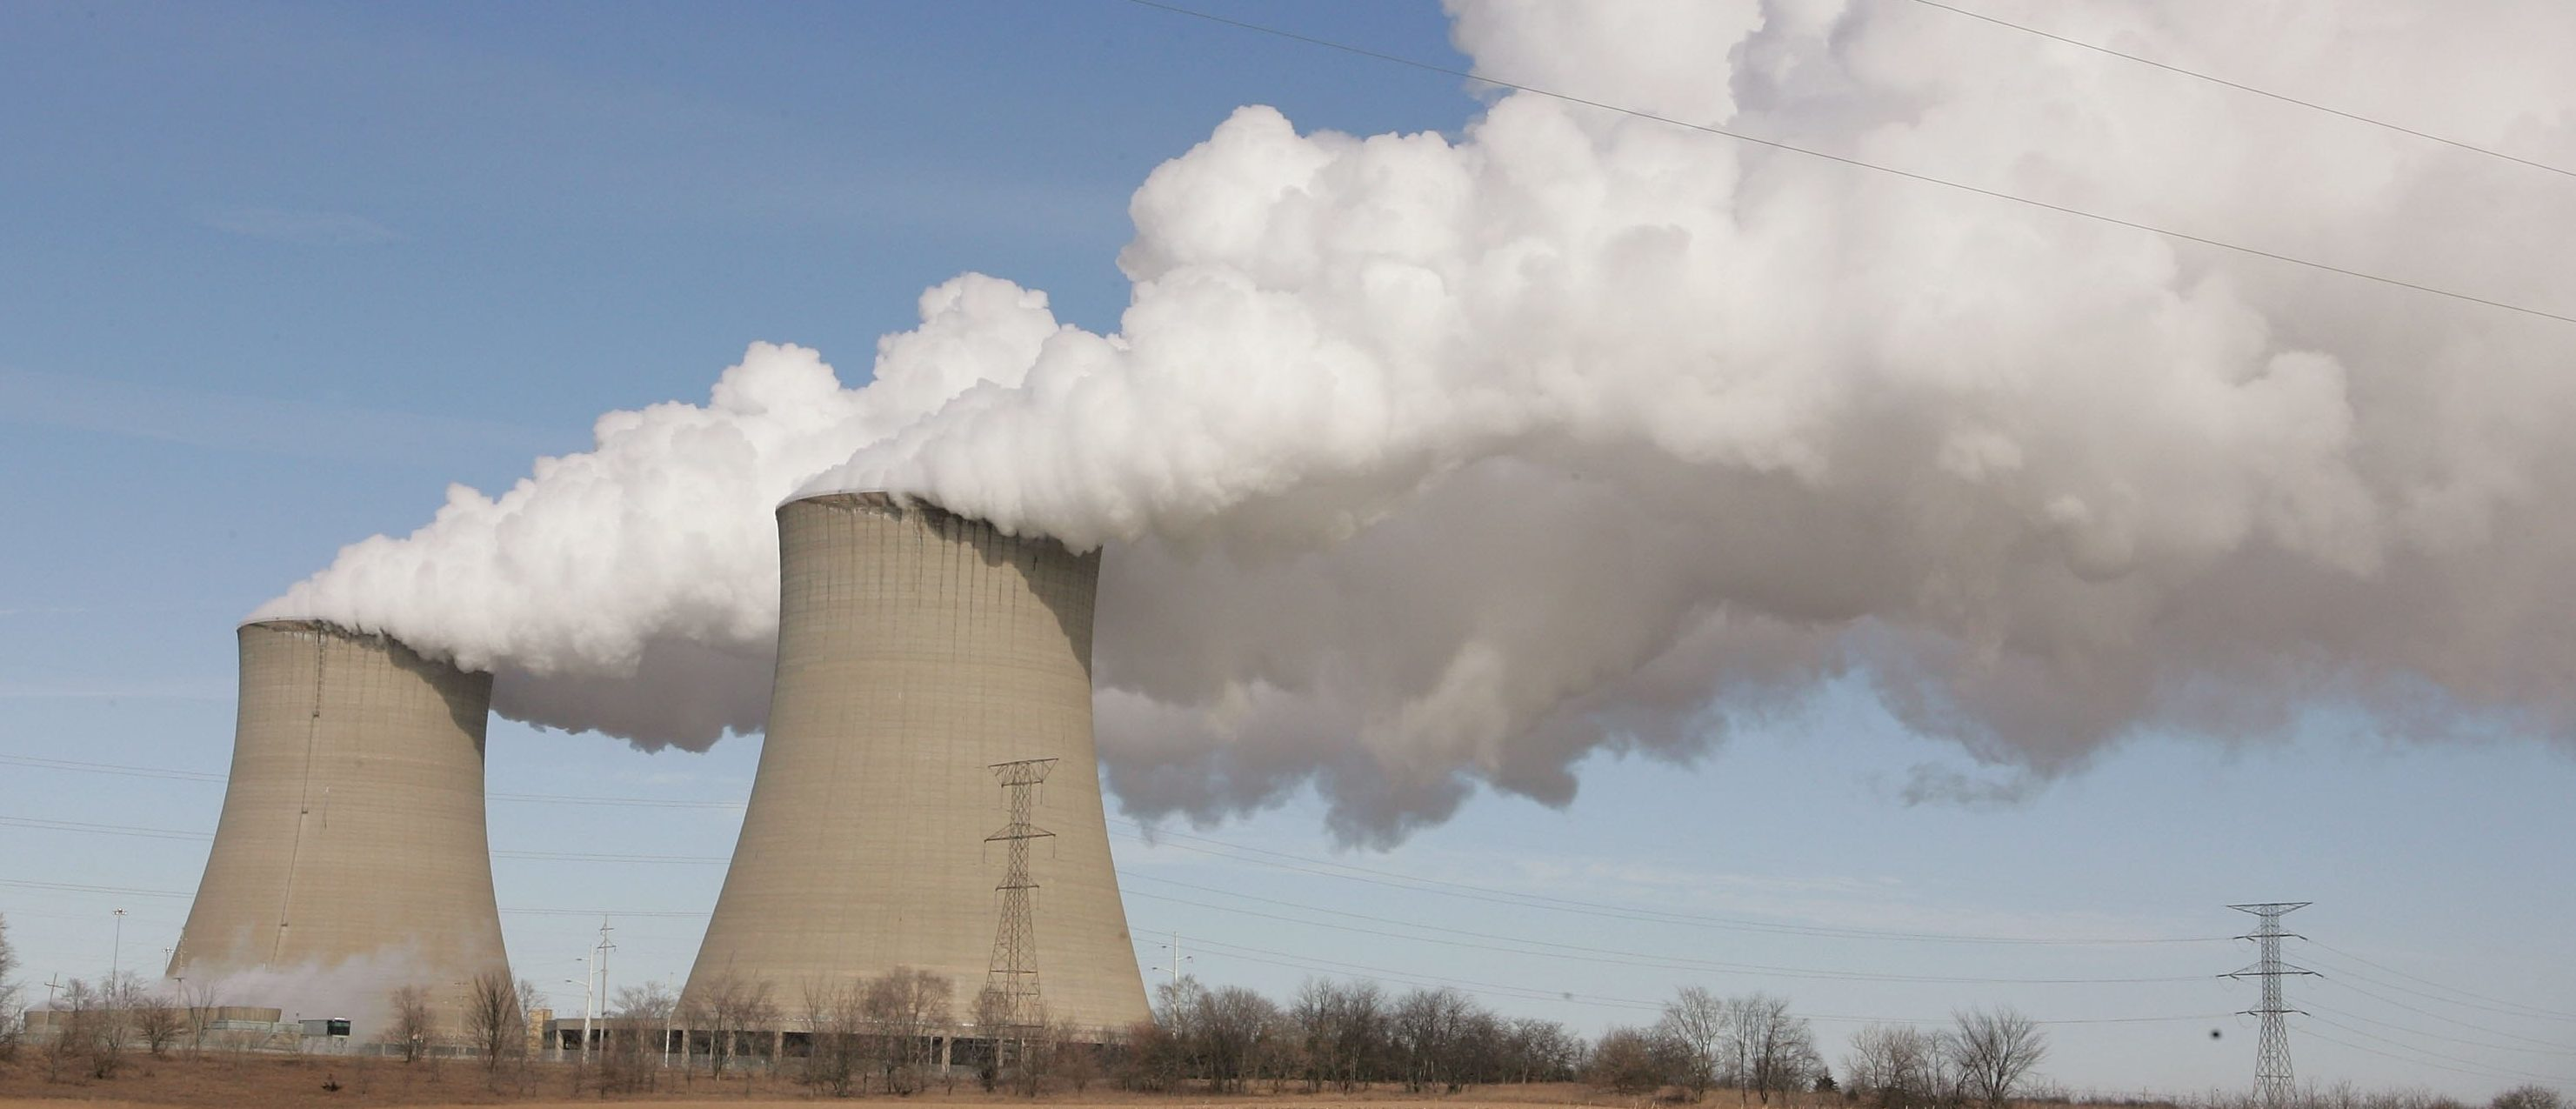 BYRON, IL - FEBRUARY 17: Steam billows from the cooling towers at Exelon's nuclear power generating station February 17, 2006 in Byron, Illinois. Elevated levels of radioactive tritium have been found in water leaked from the facility as well as two other nuclear power generating facilities owned by Exelon in the state. Tritium has been linked to cancer and birth defects. Exelon operates nuclear power units at in Illinois, Pennsylvania and New Jersey. (Photo by Scott Olson/Getty Images)